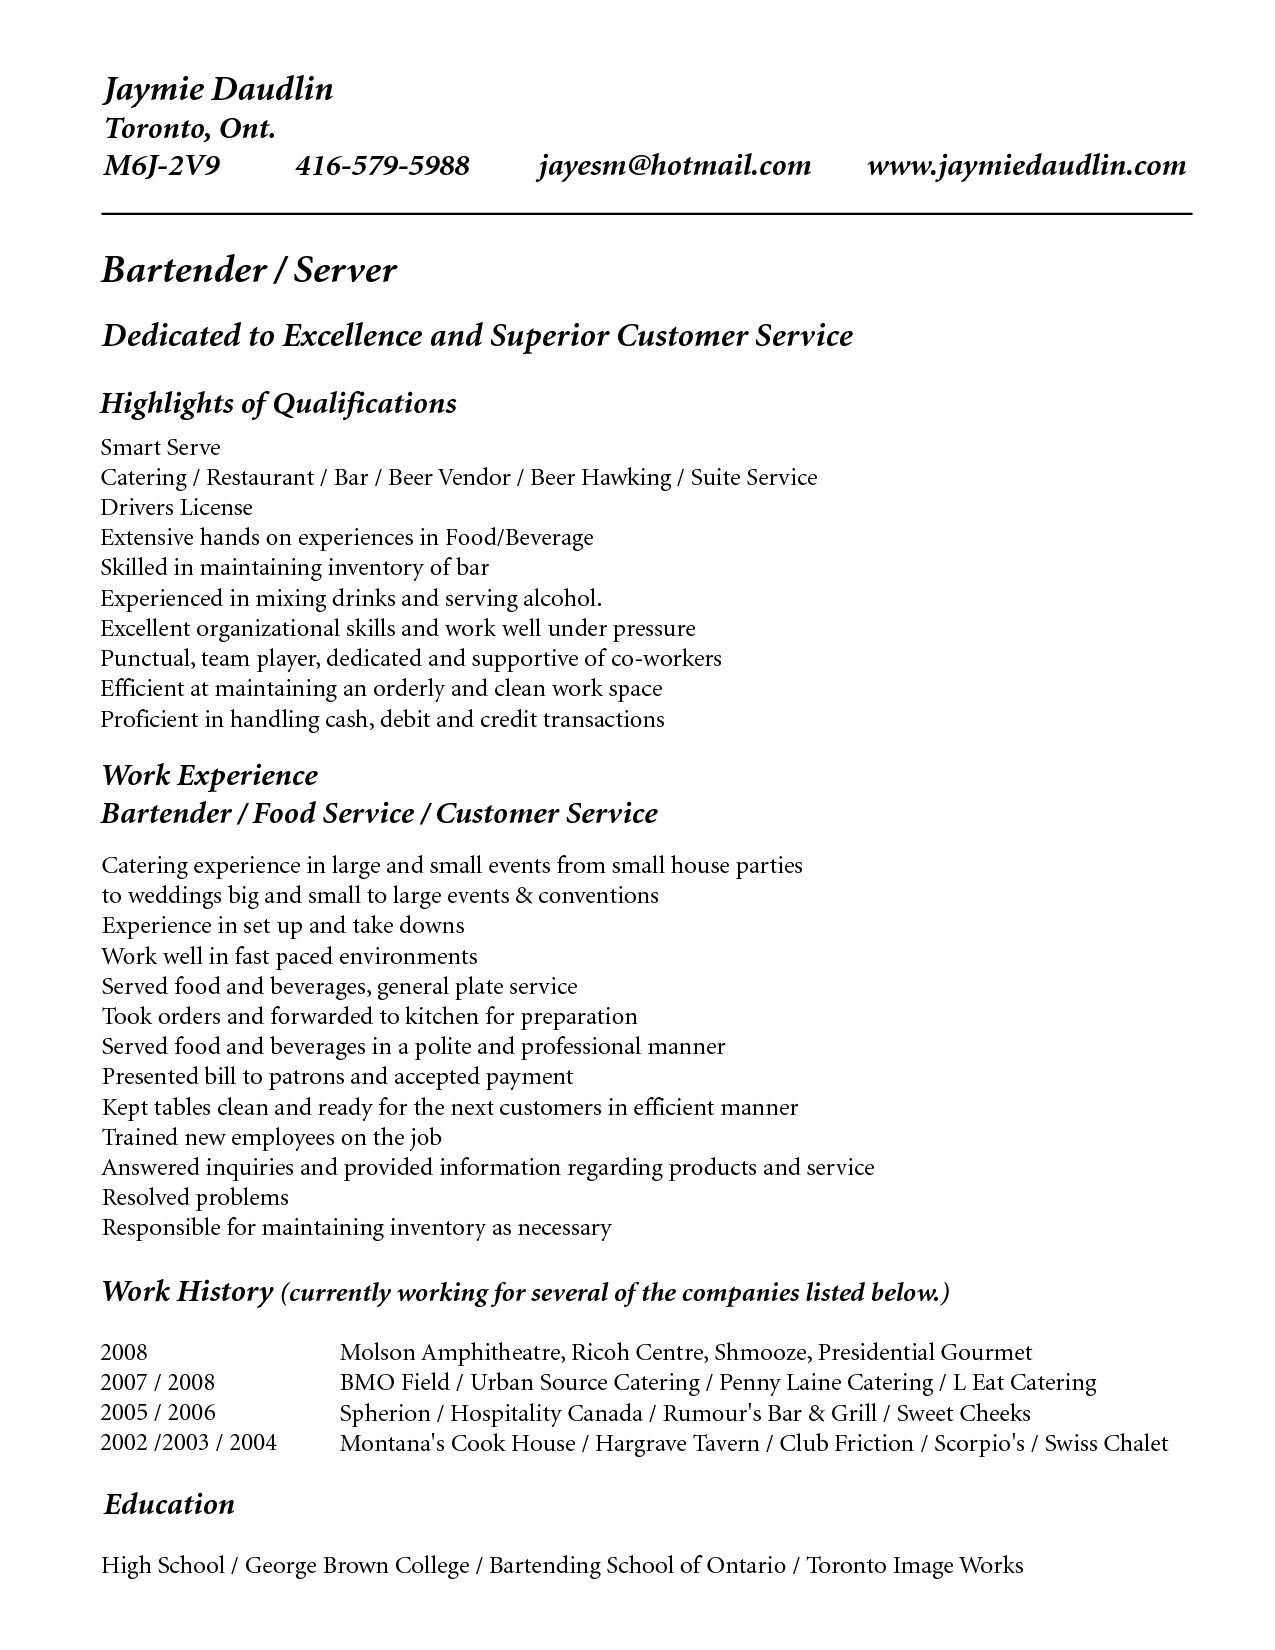 Resume Templates For Bartenders  EczaSolinfCo